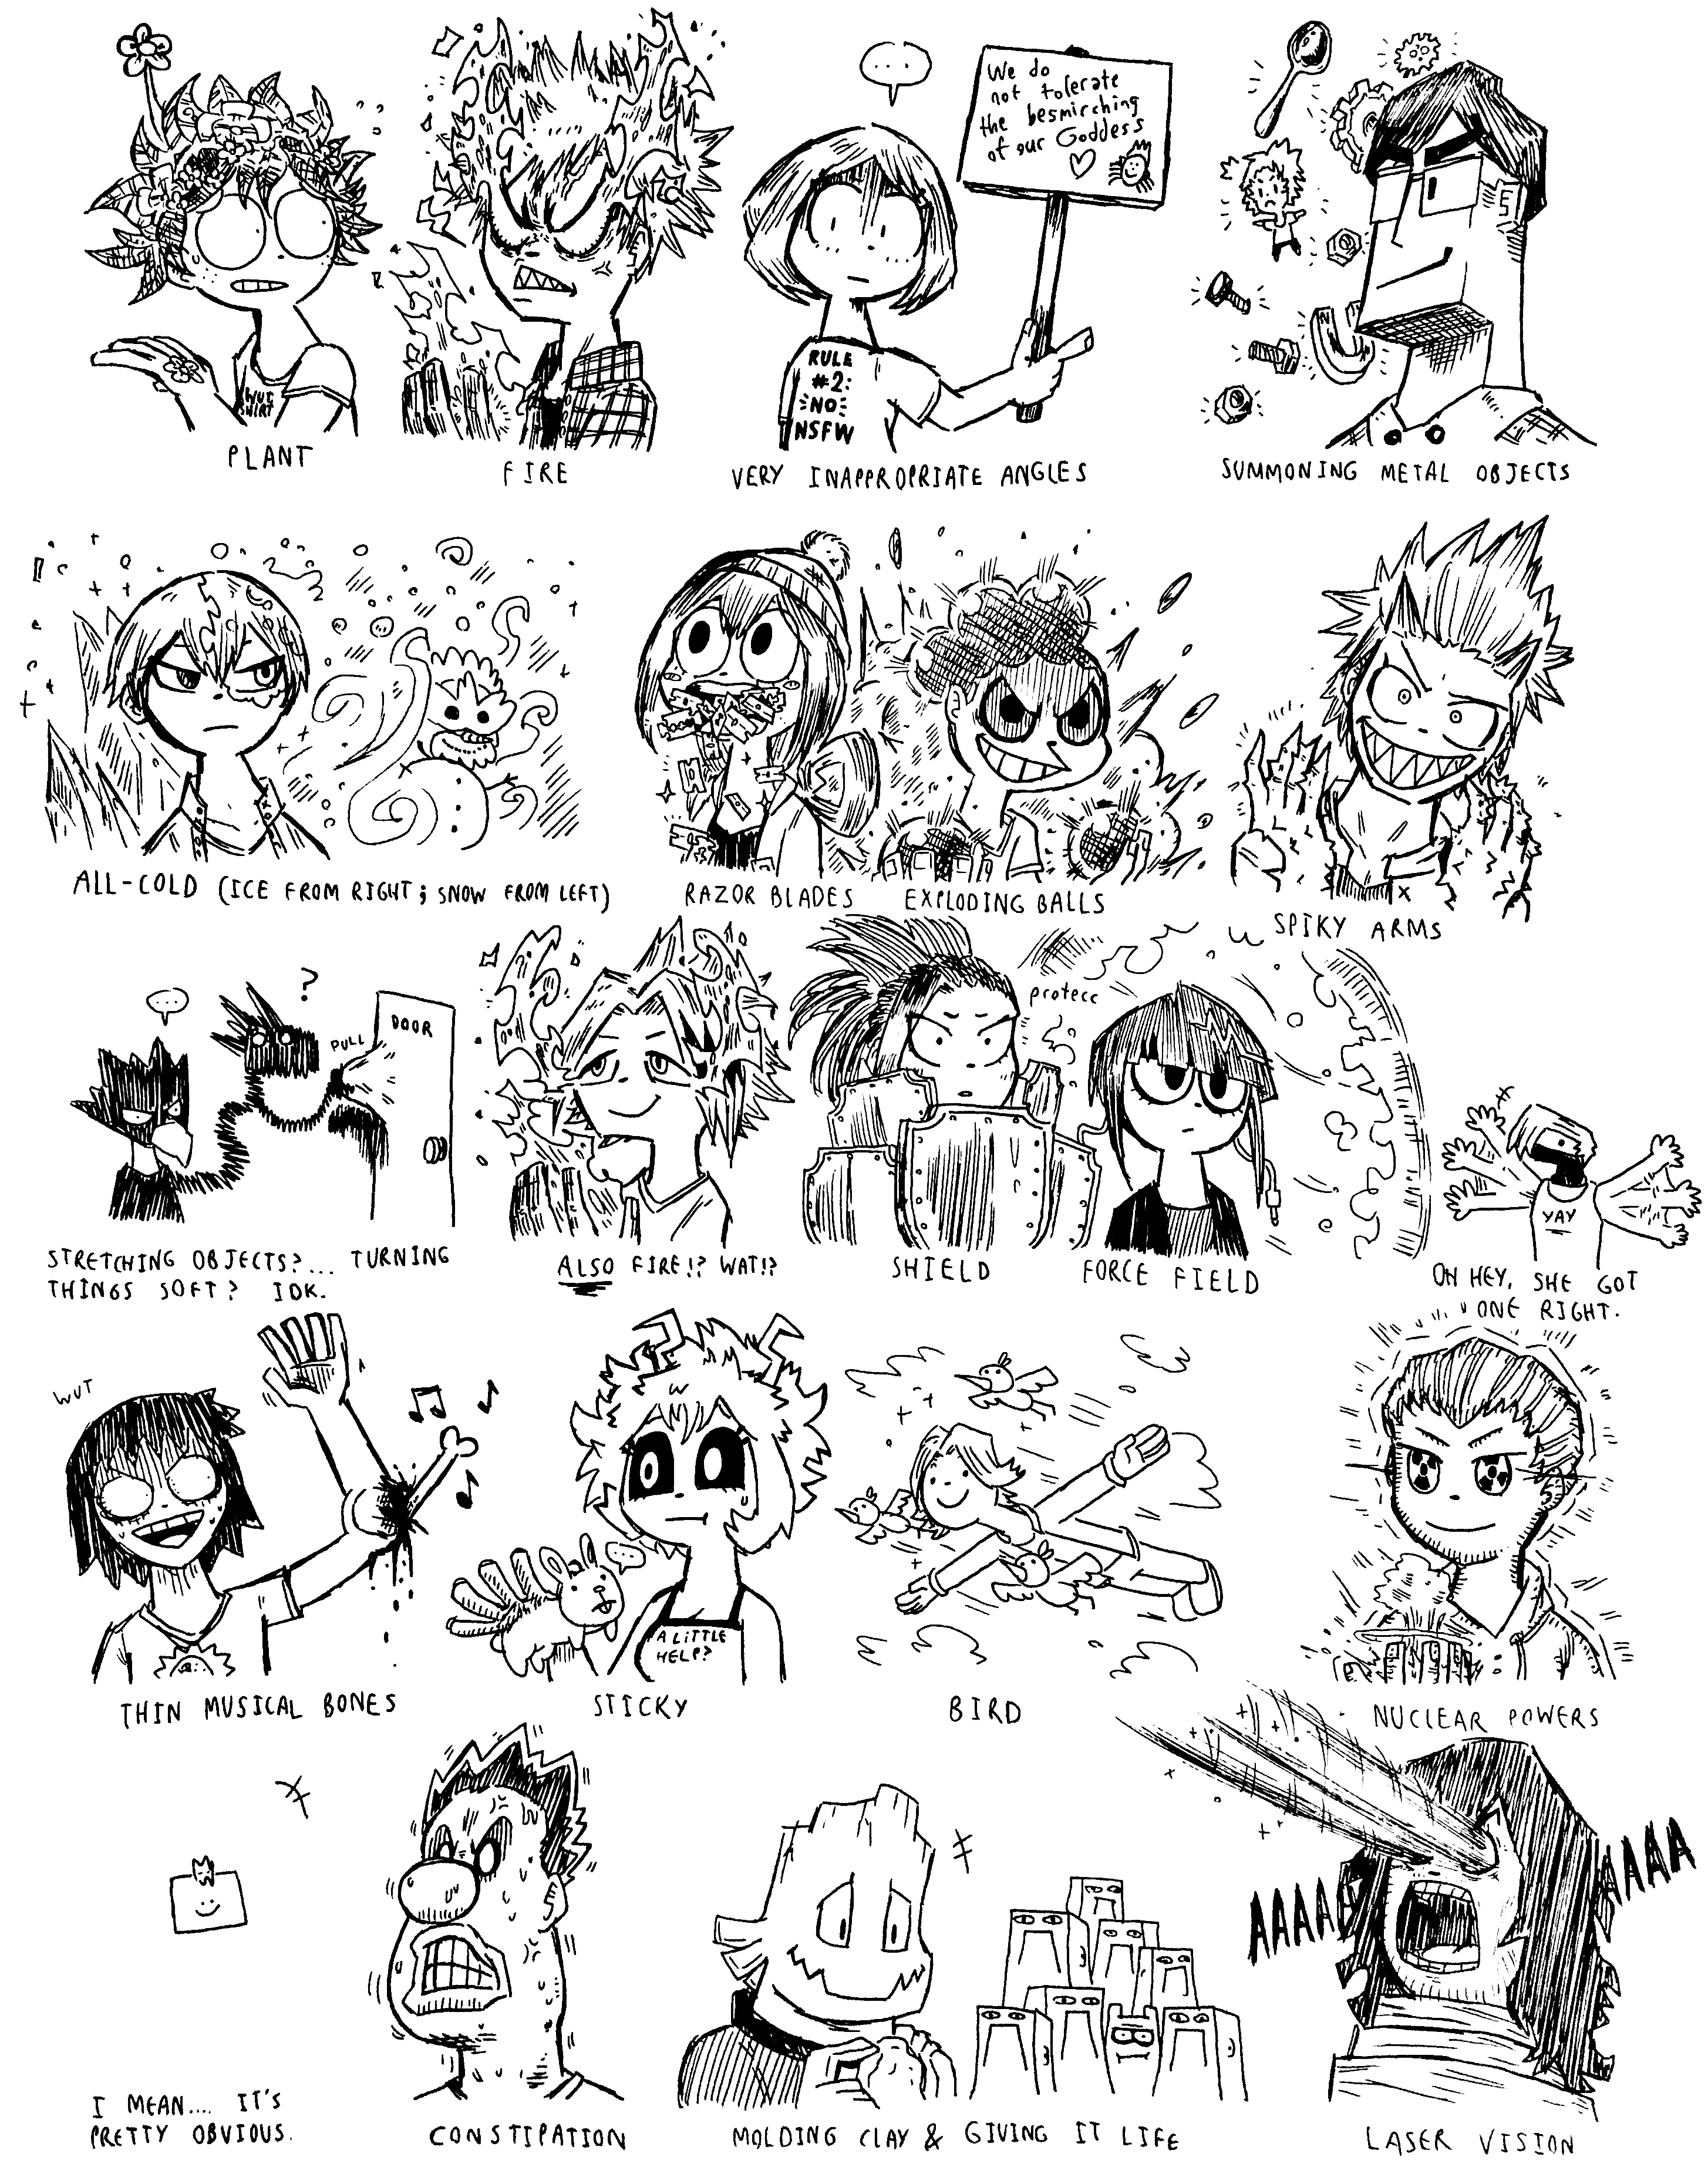 So I had my teacher guess the quirks of Class 1-A by Josh-S26 on